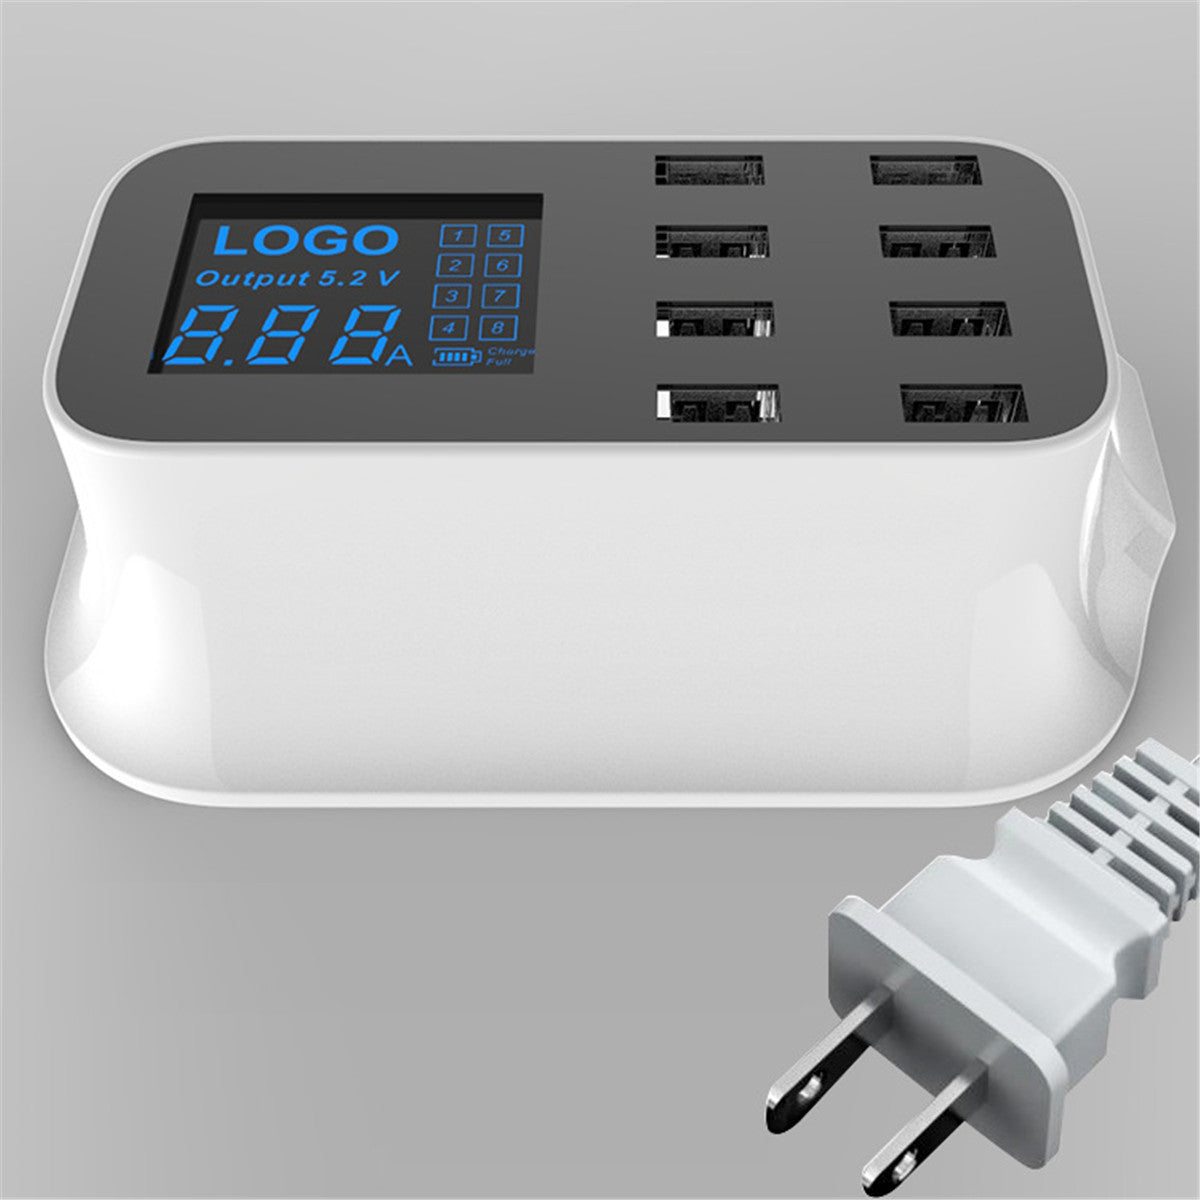 8 Multi-Port USB Adapter Desktop Wall Charger Smart LED Display Charging Station USB Charger